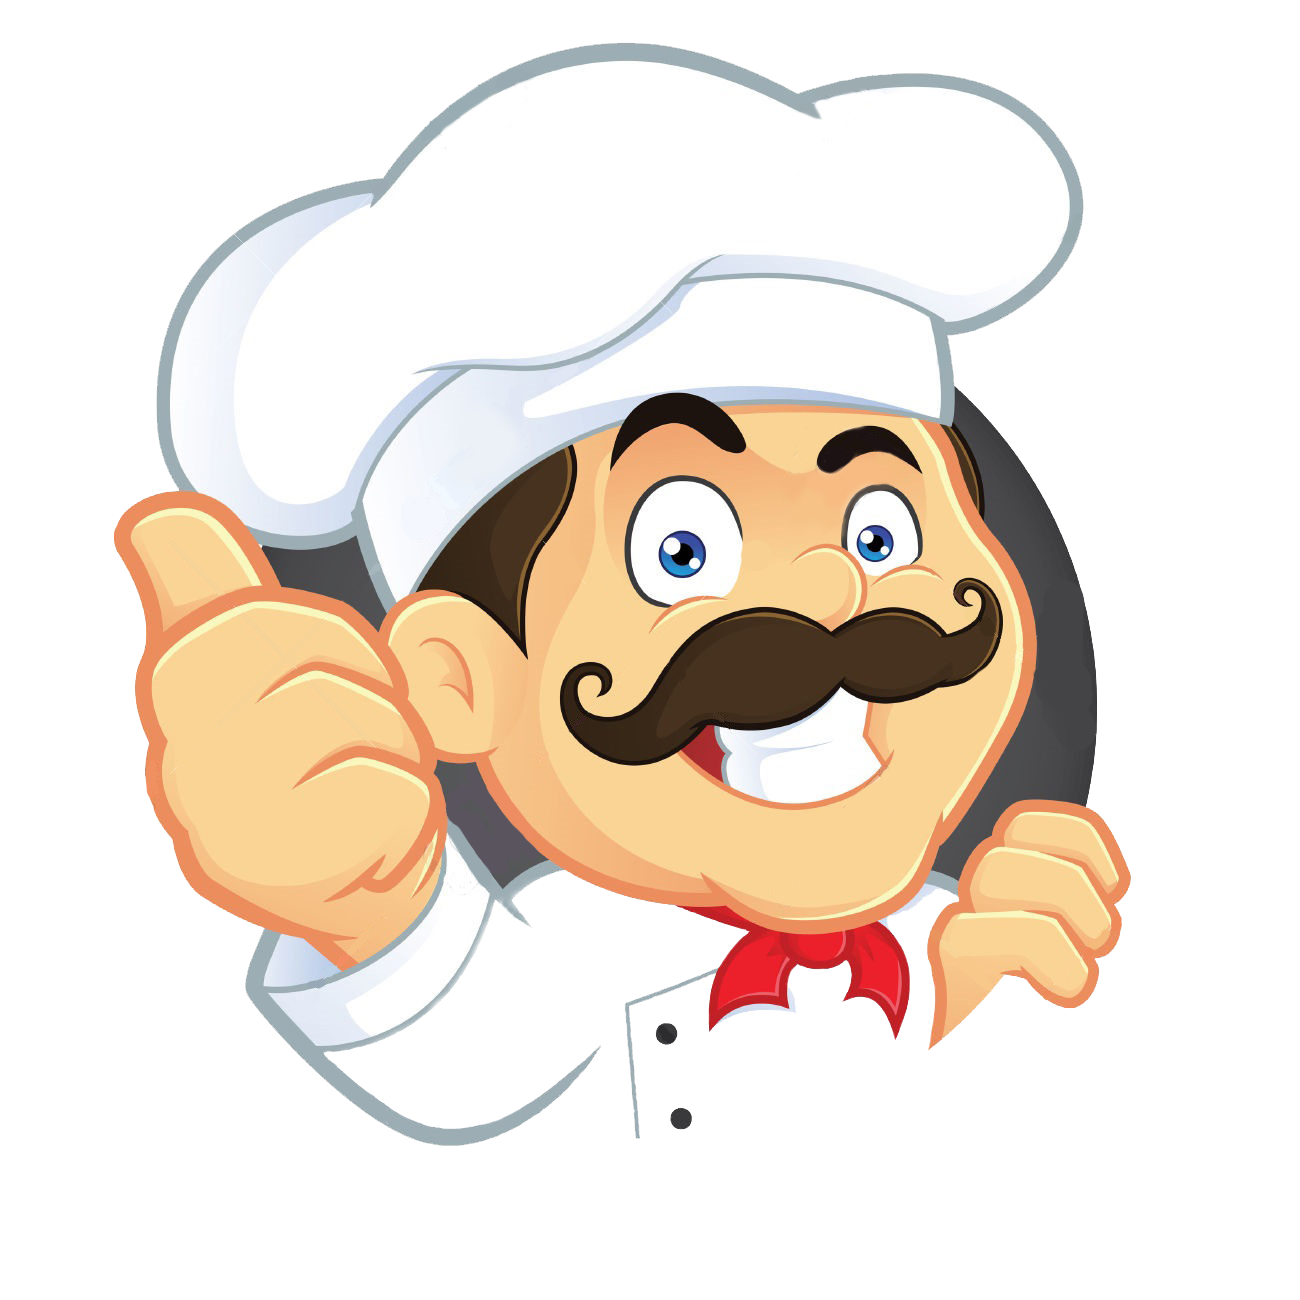 Cooking clipart mr chef. Our speciality